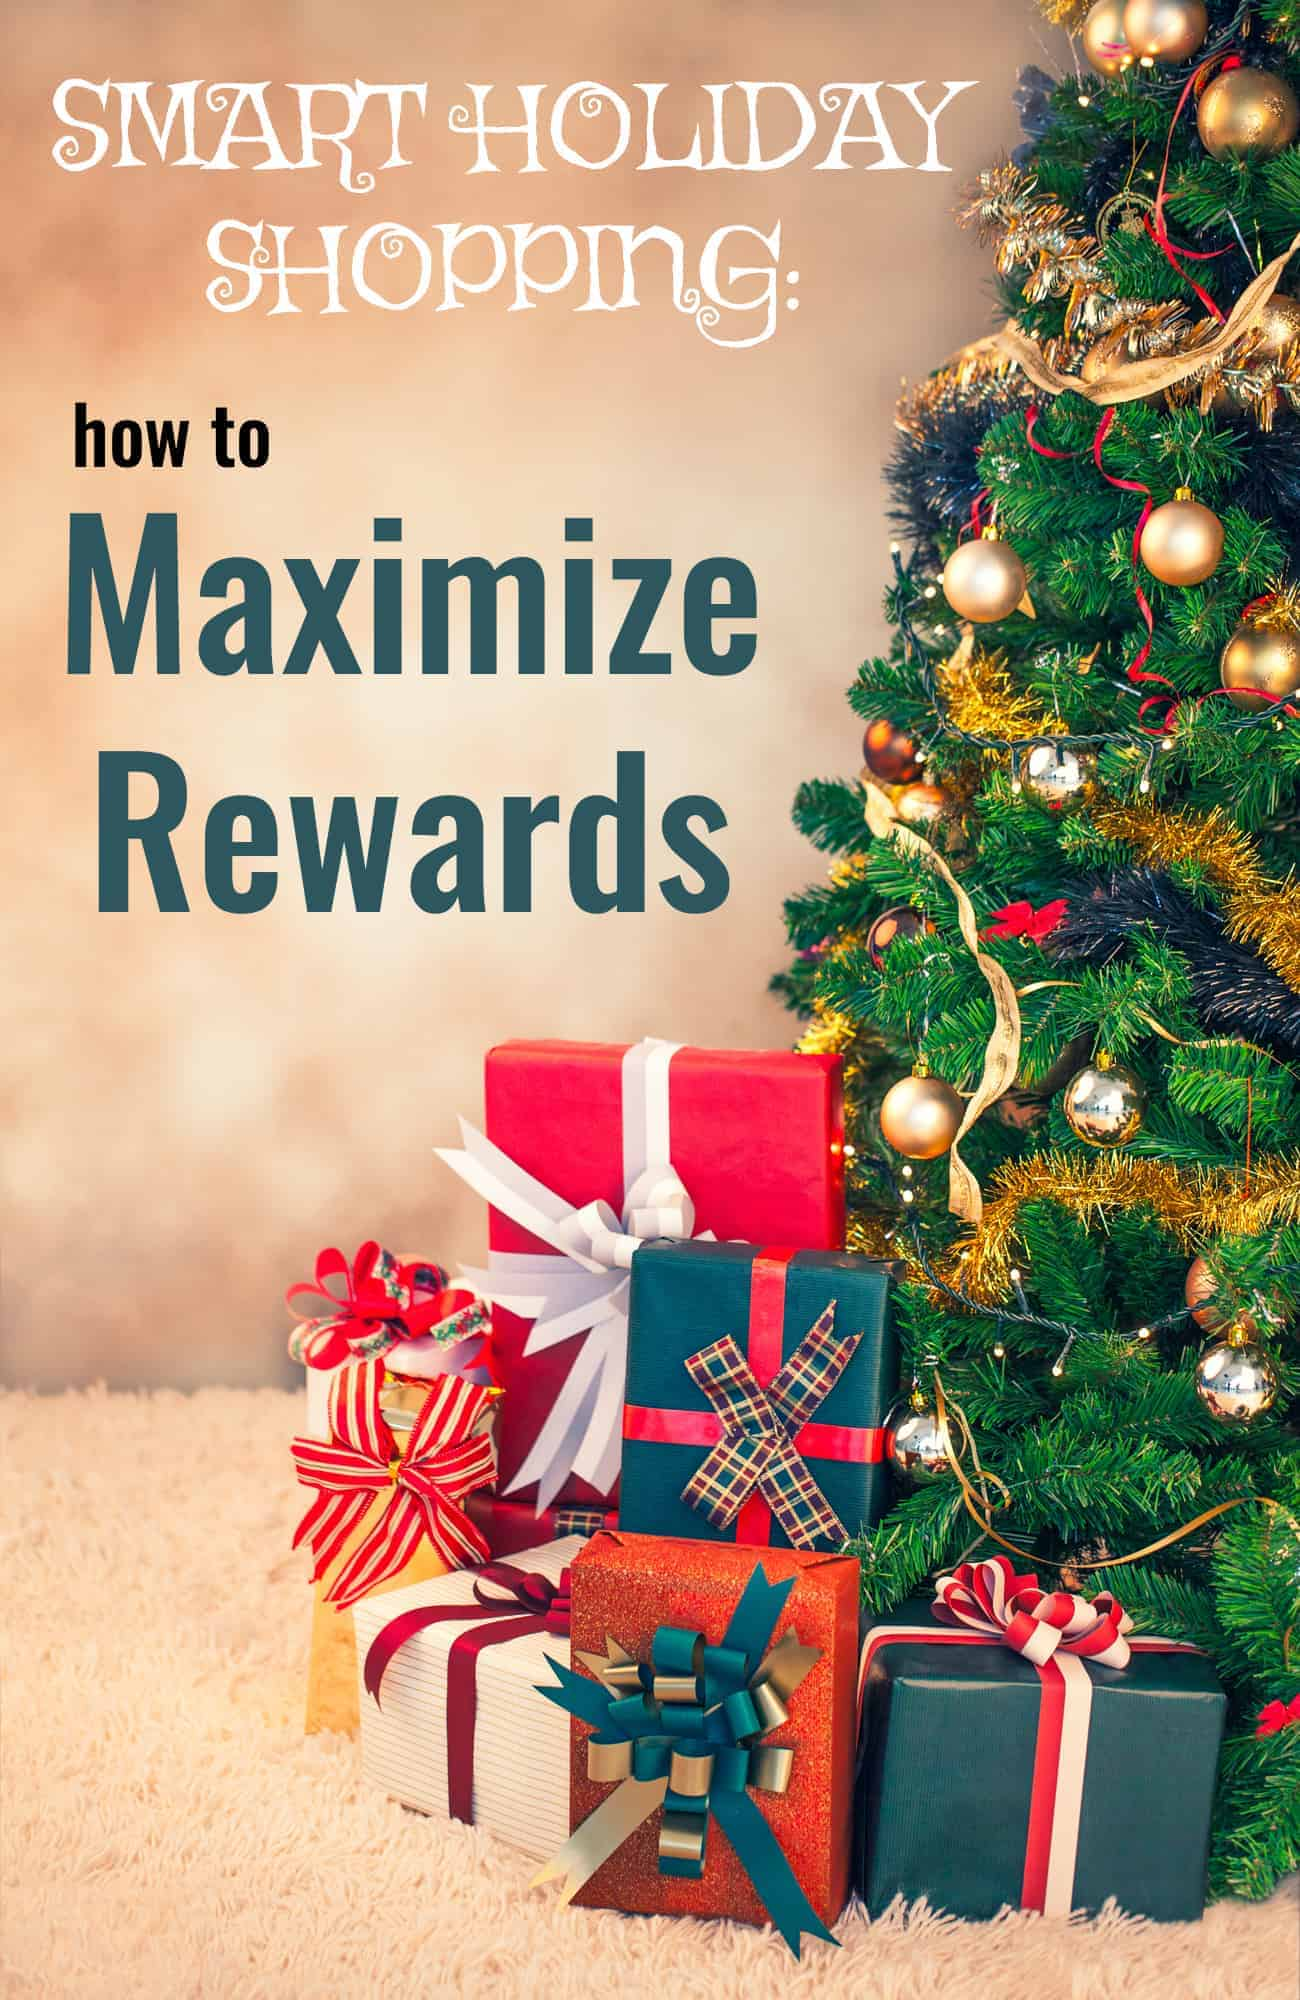 Smart Holiday Shopping Maximimize Rewards rbc credit card